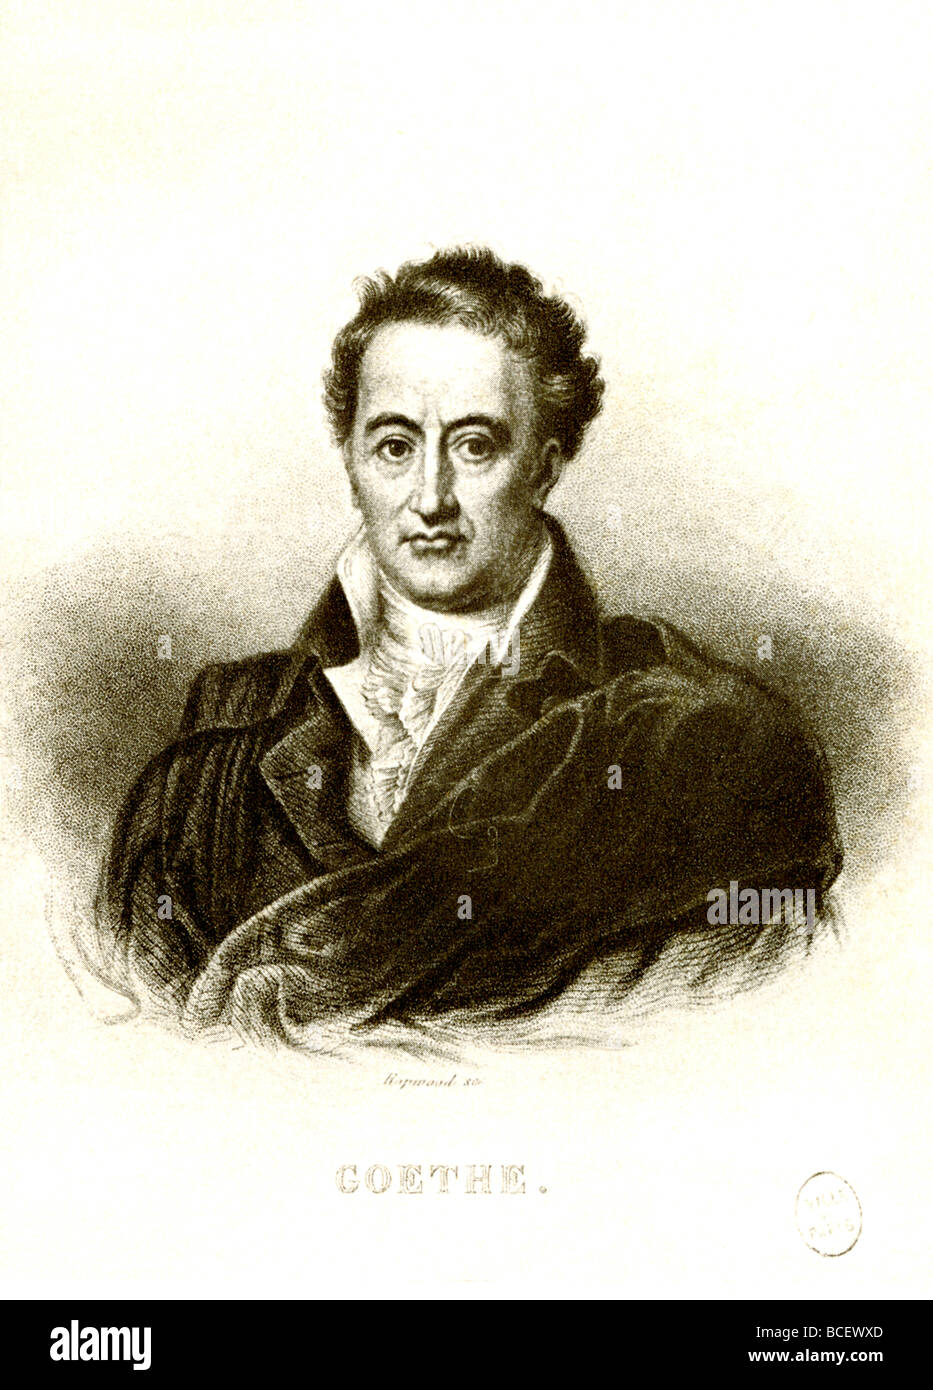 Johann Wolfgang von Goethe (1749-1832) was a German poet, dramatist, and novelist. #8;He is best known for his work - Stock Image